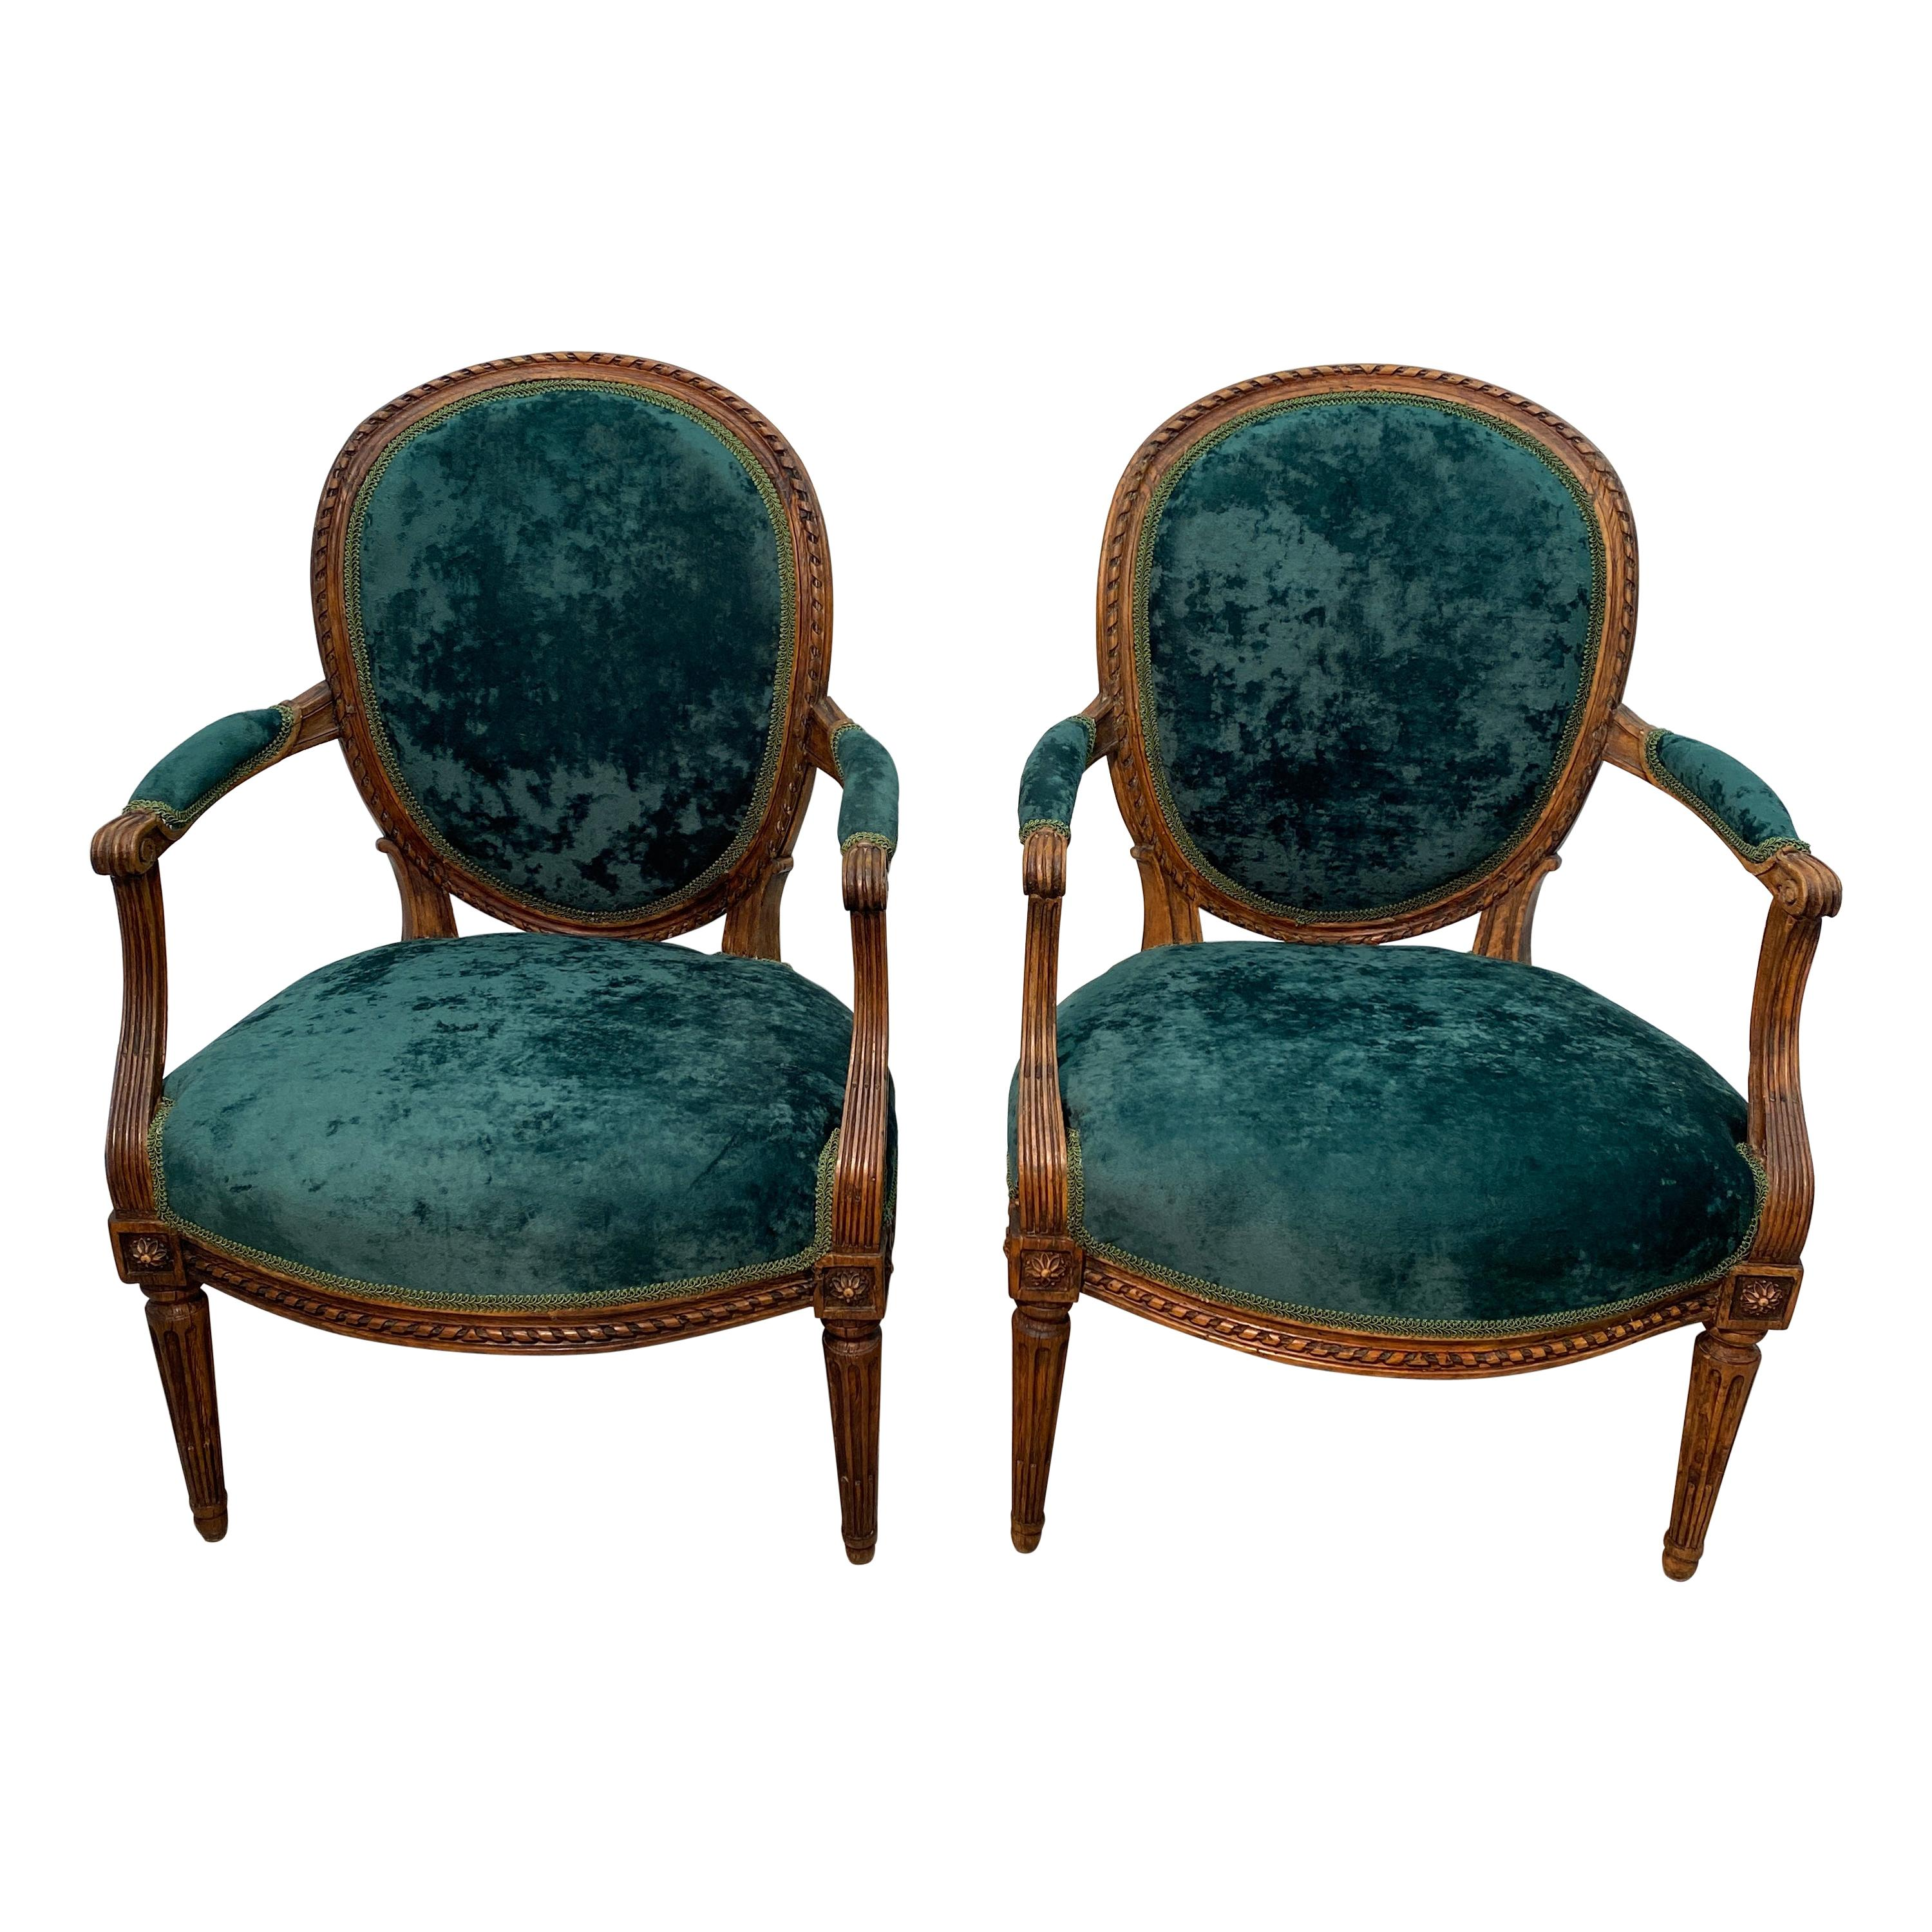 Pair of Period 18th Century French Louis XVI Walnut Fauteuil Arm Chairs